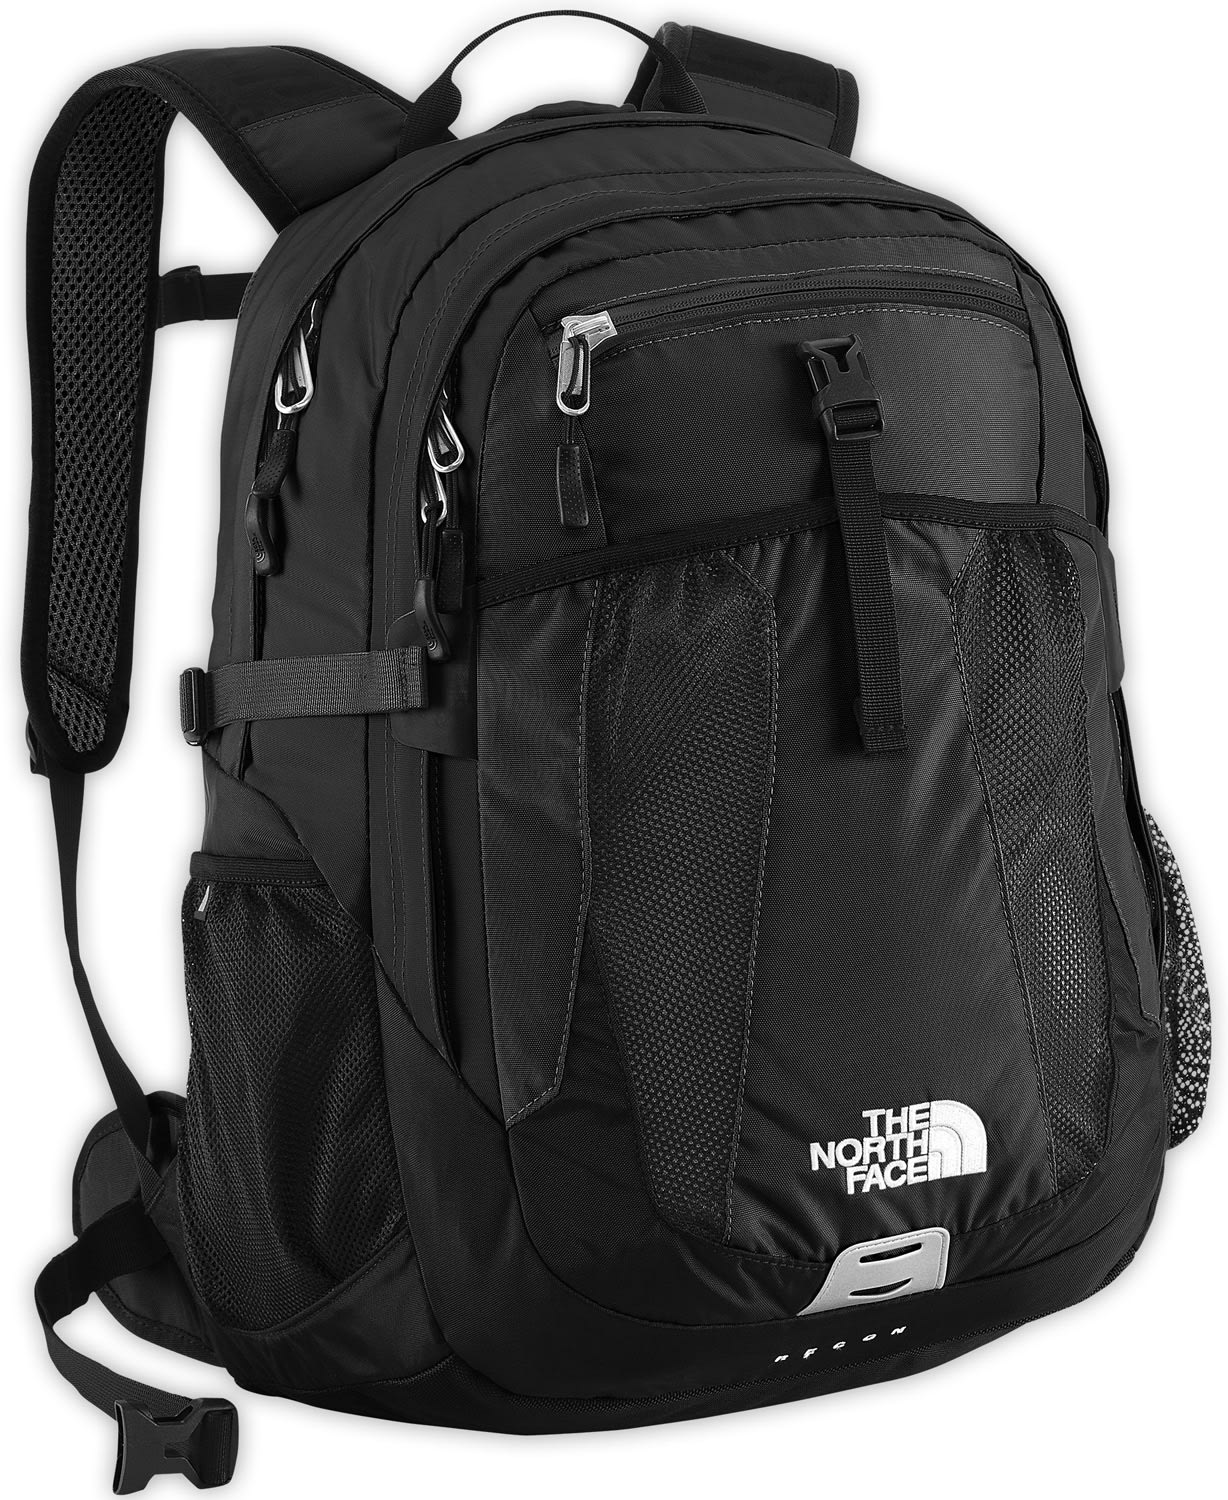 The North Face Recon Backpack TNF Black 29L